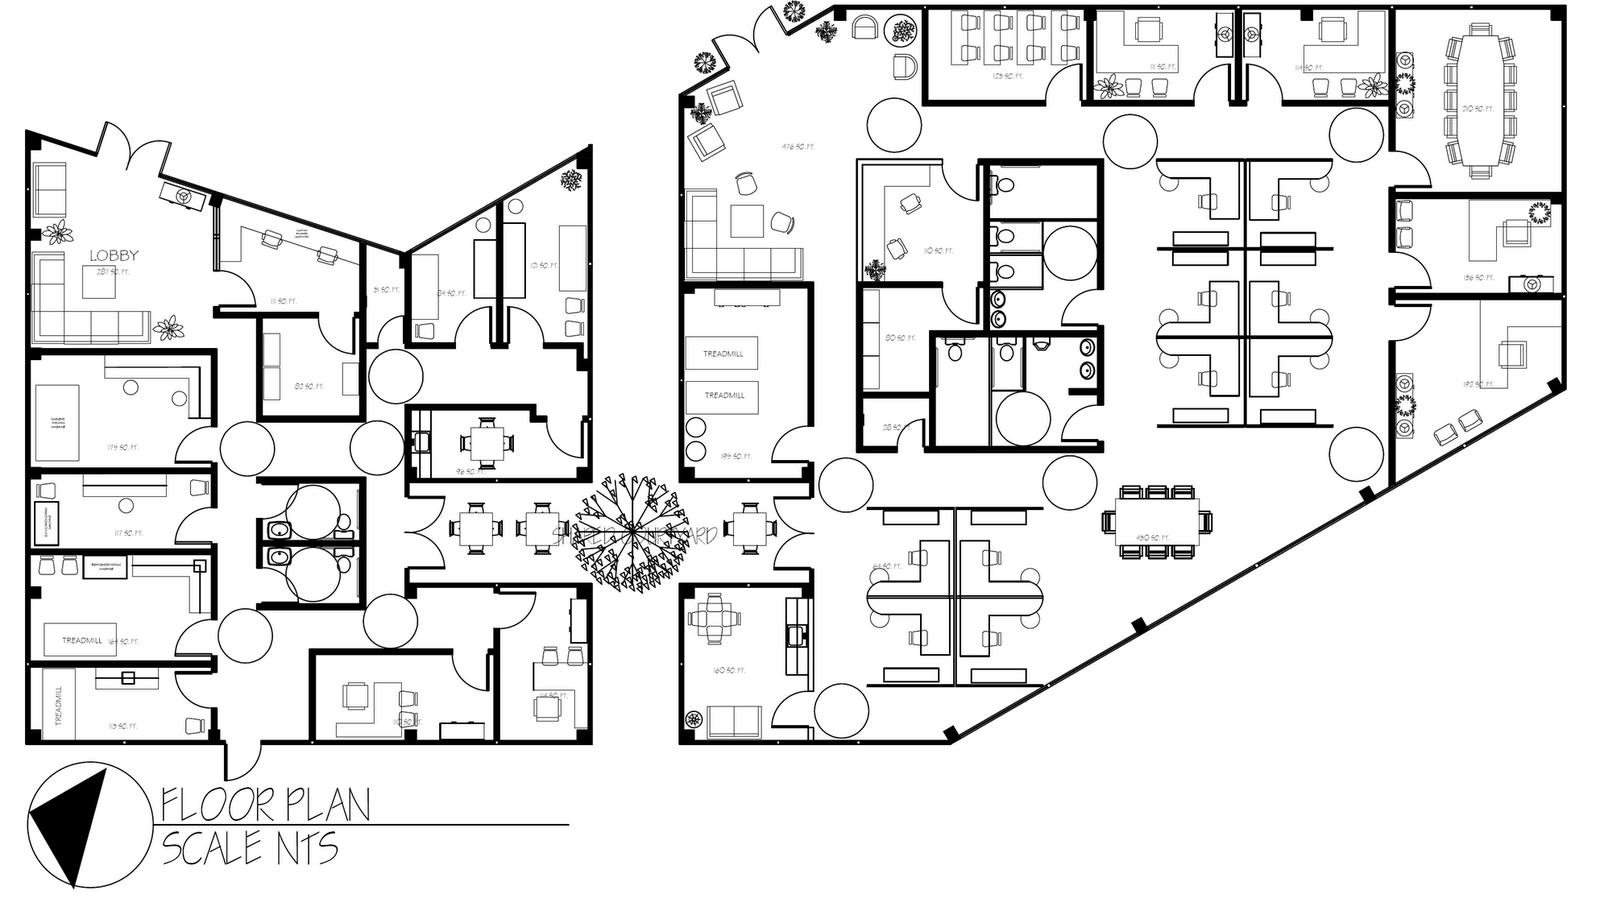 Modern Drawing Office Layout Plan At GetDrawings.com